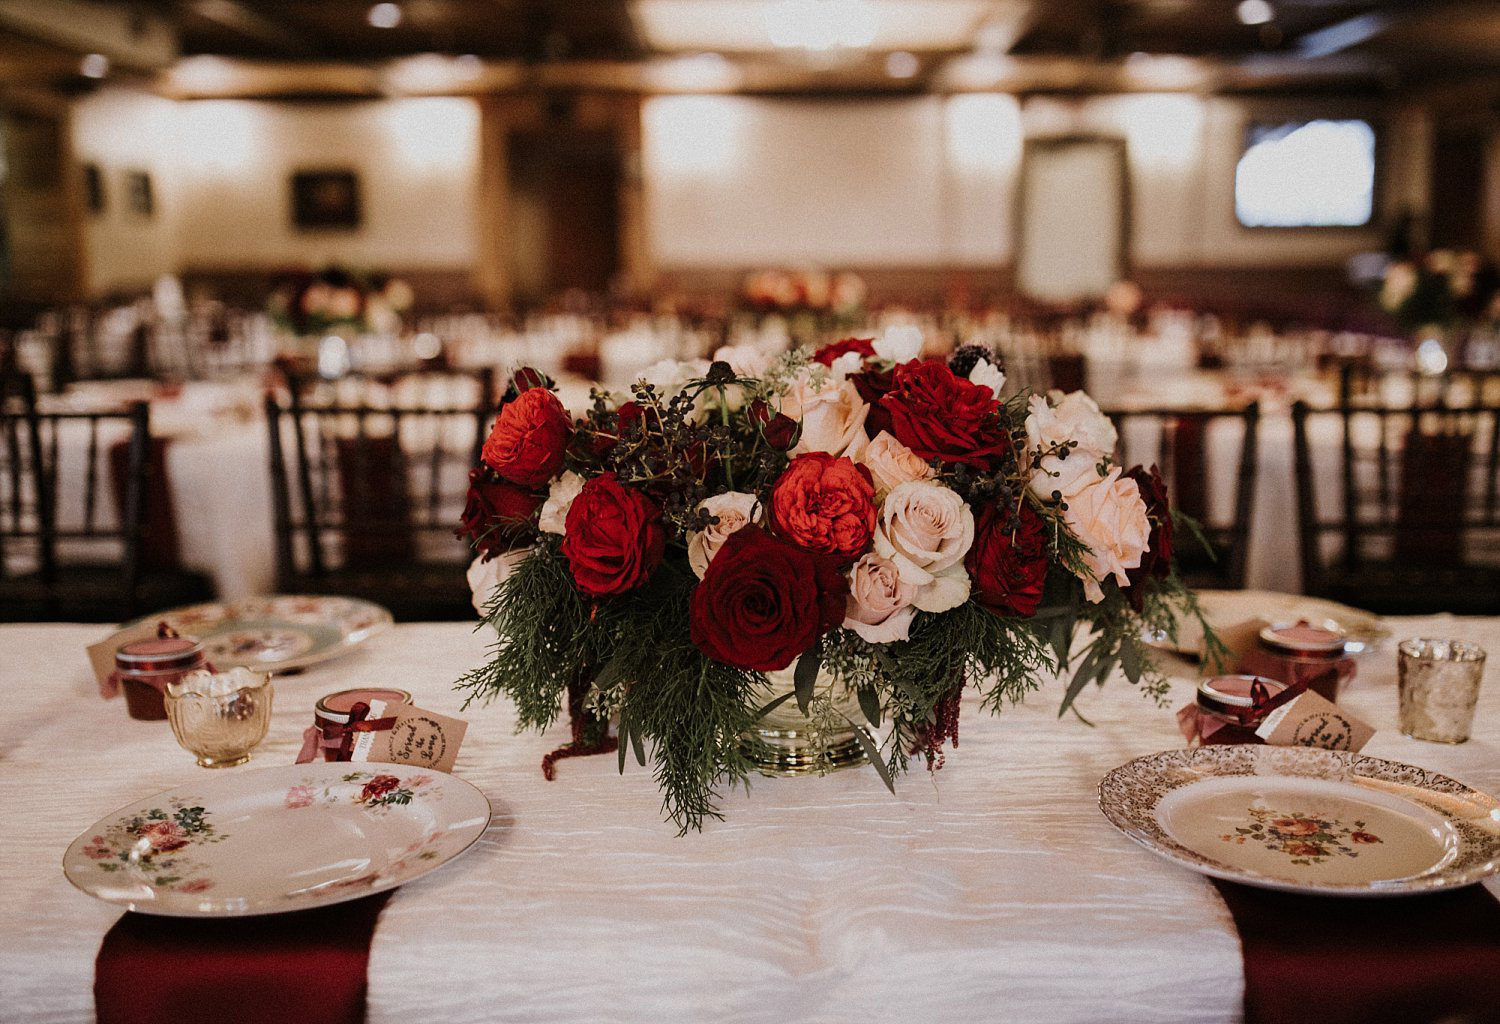 Hollow Hill Farm Event Center Wedding red and cream floral centerpiece with evergreens and berries